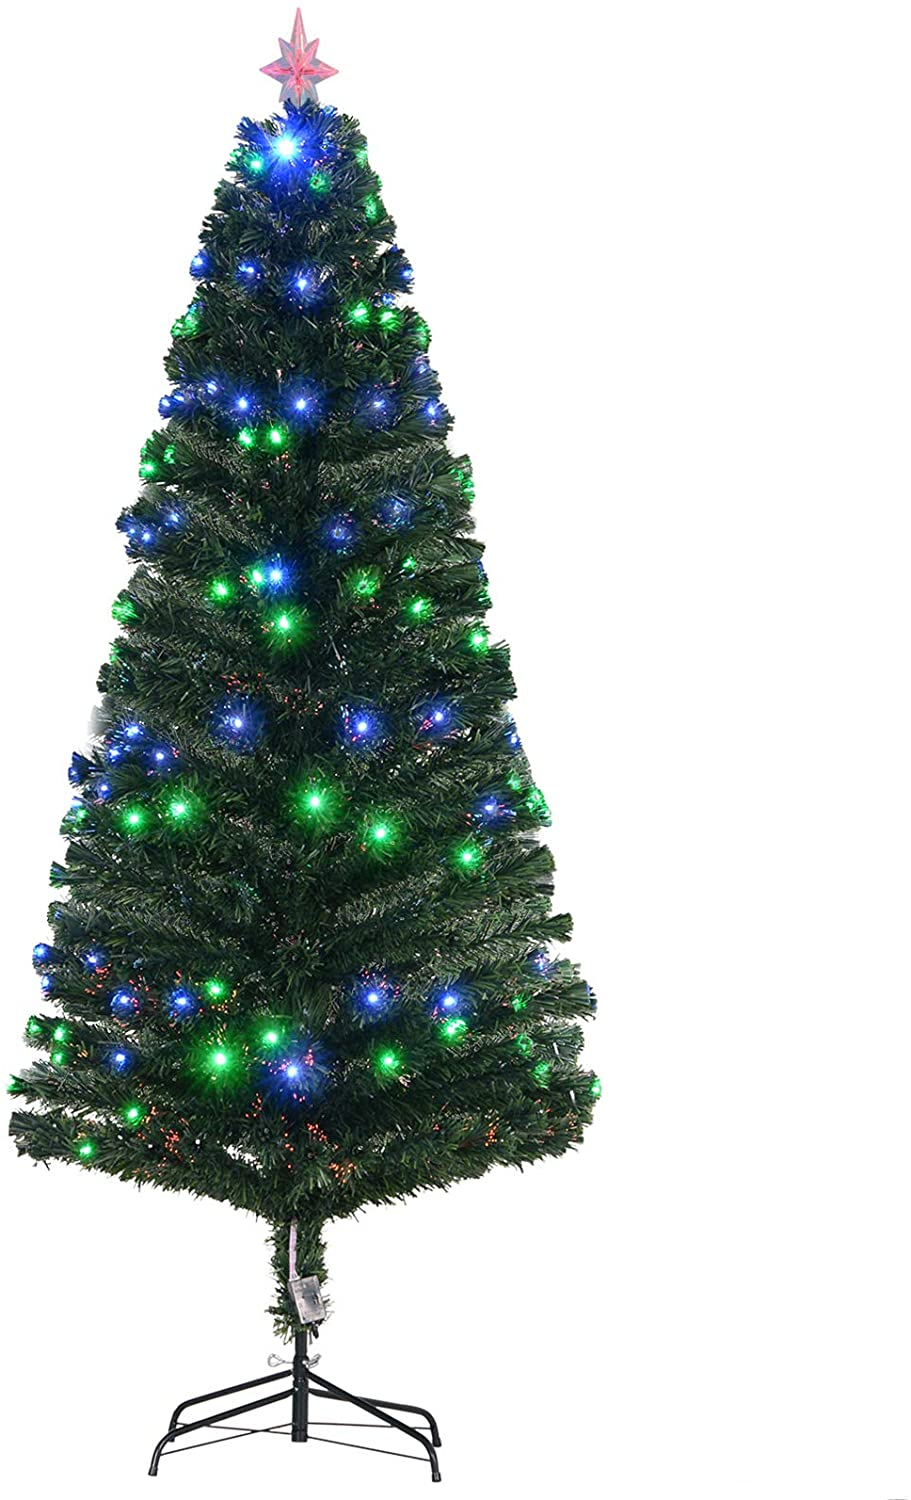 HOMCOM 7FT Tall Artificial Tree Multi-Colored Fiber Optic LED Pre-Lit Holiday Home Christmas Decoration, Green